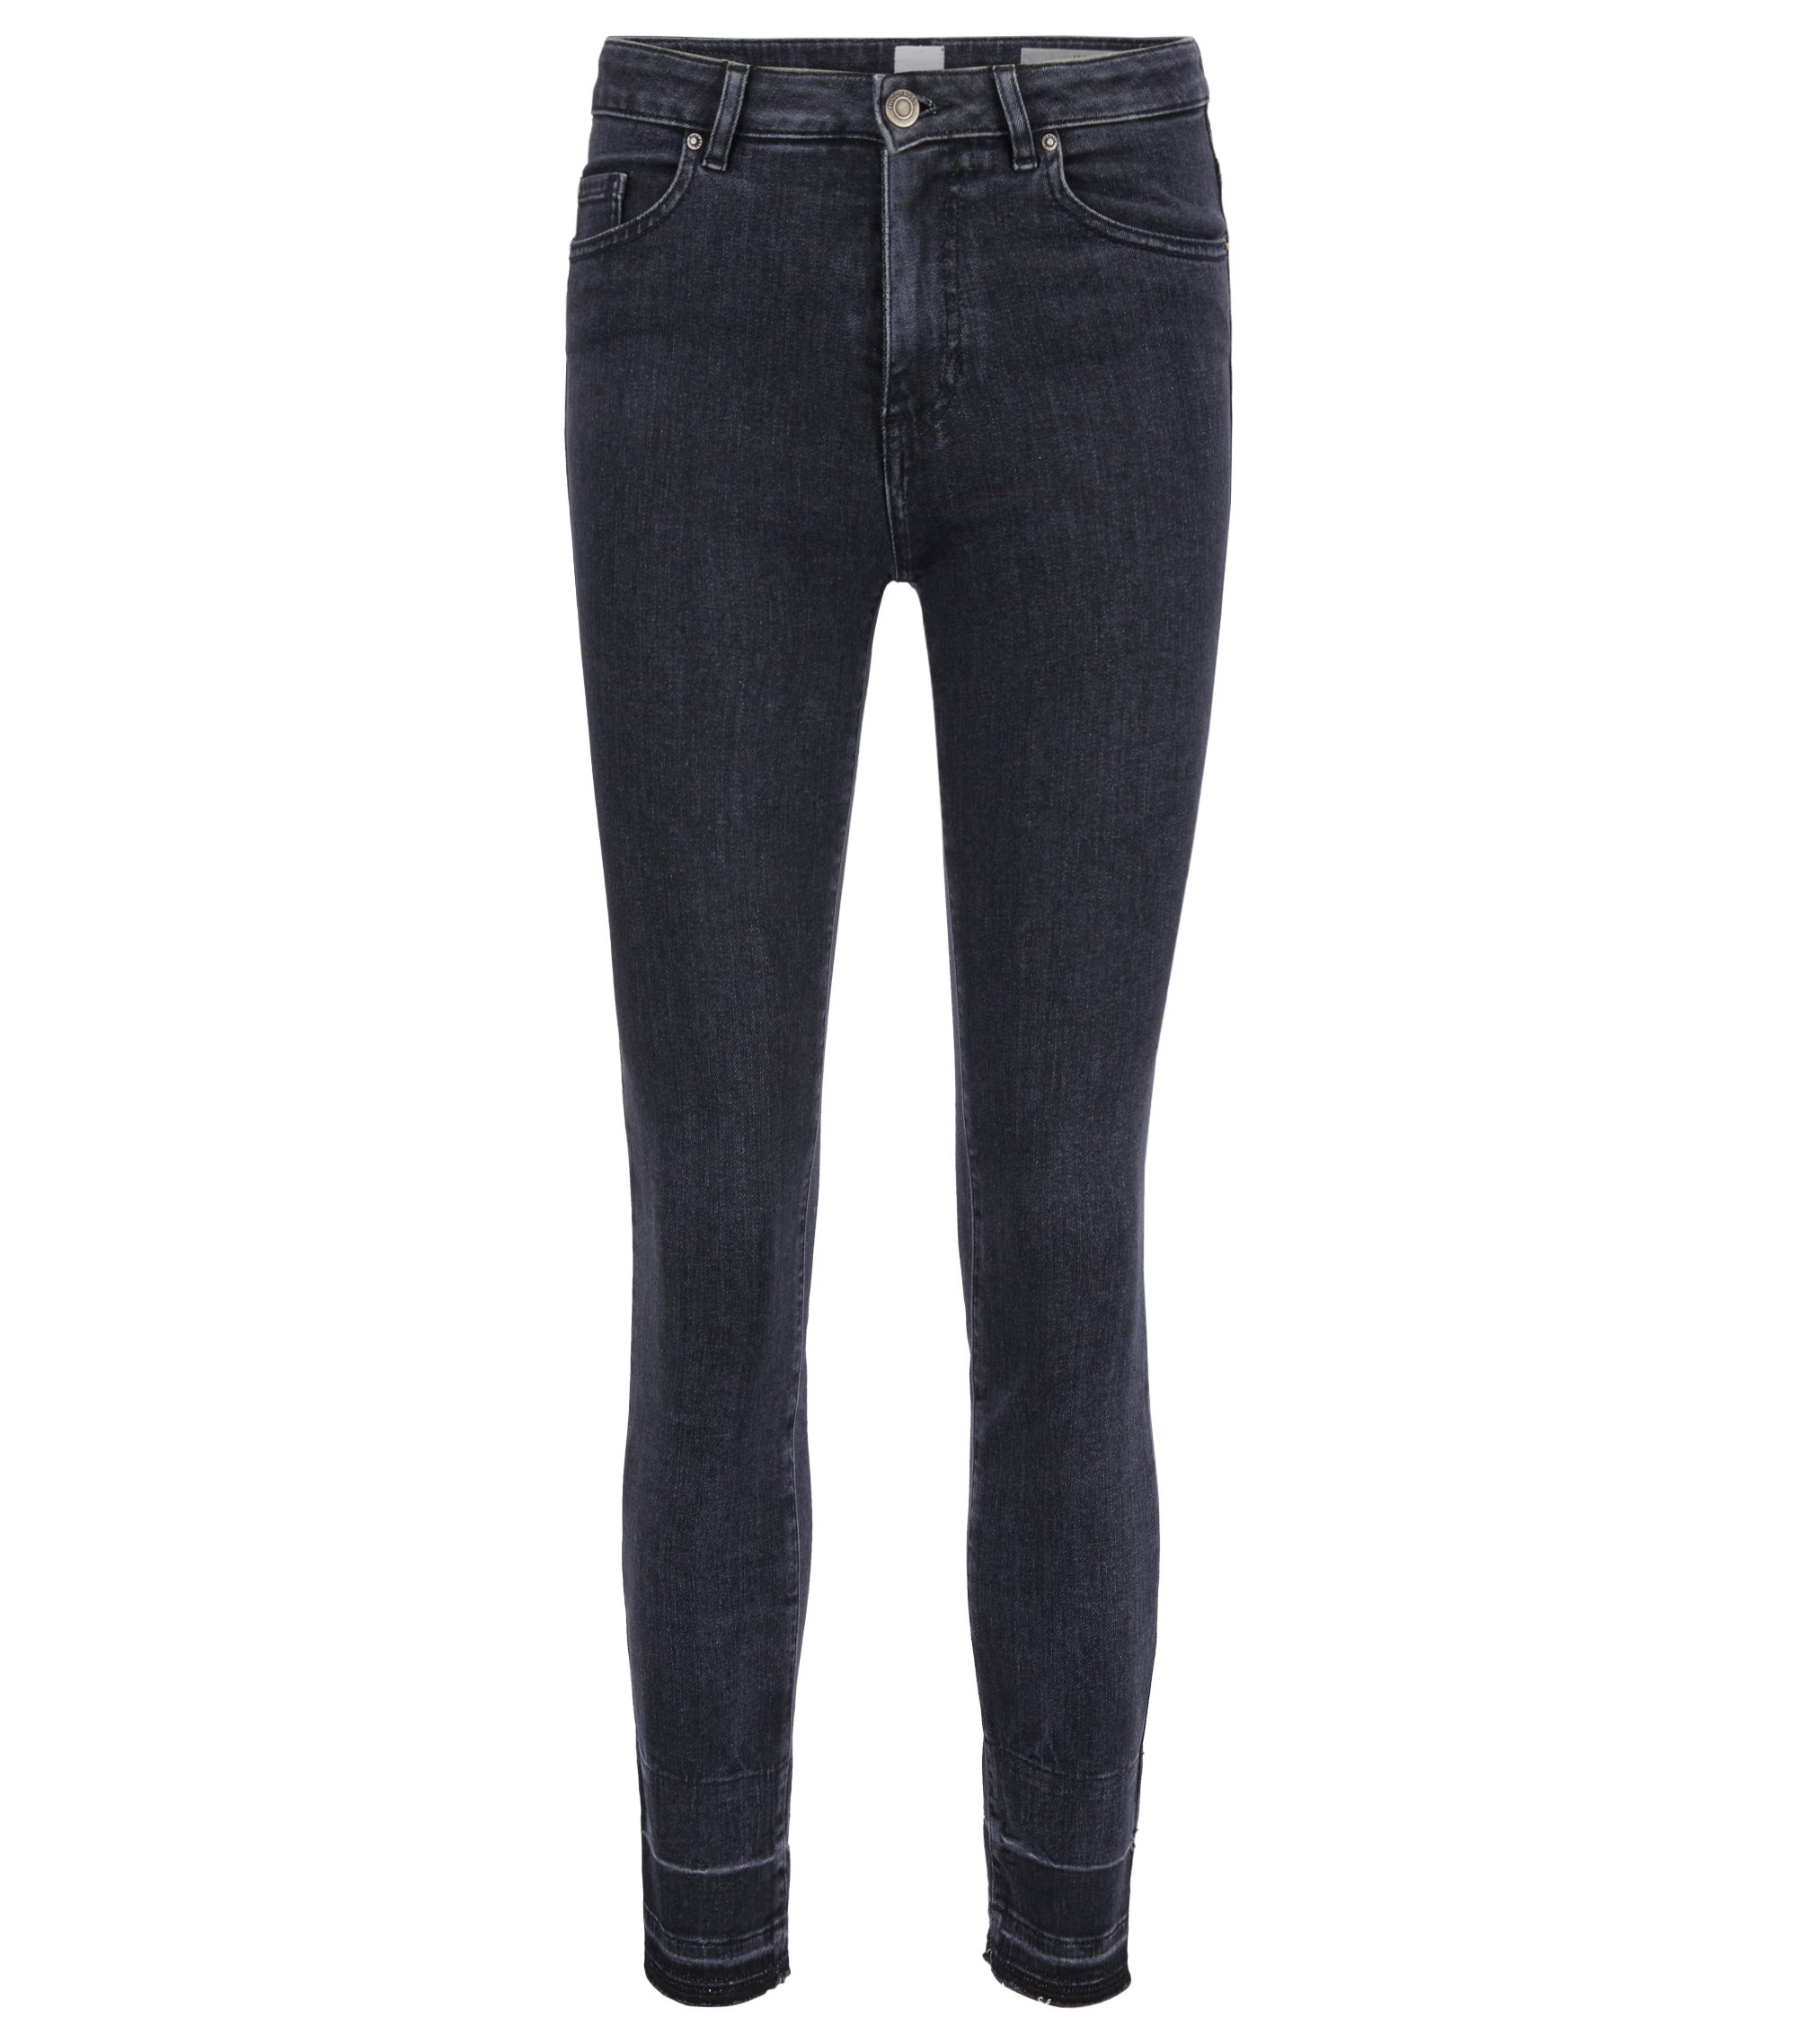 Cropped skinny-fit jeans in power-stretch denim, Dark Grey